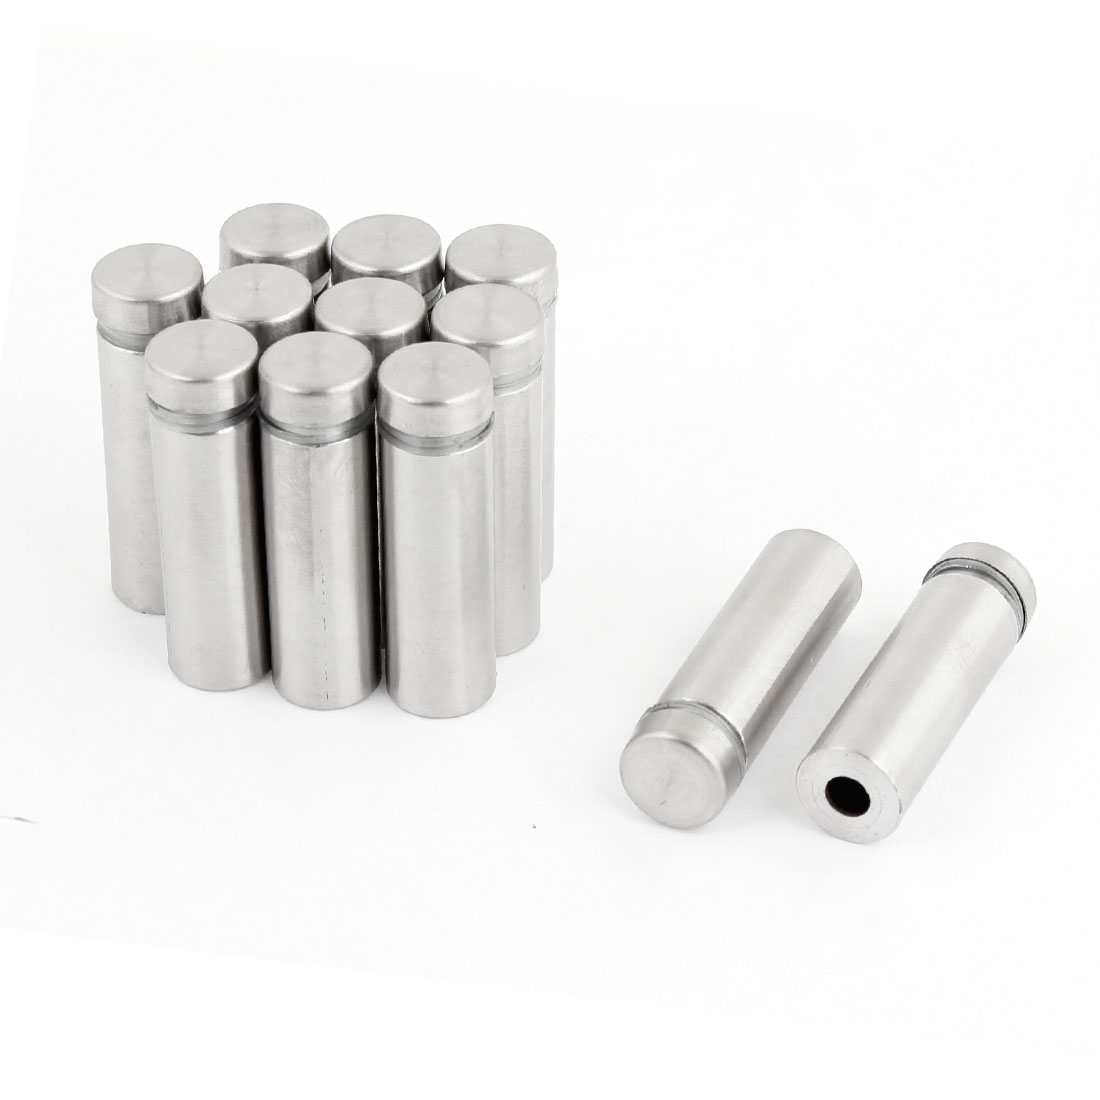 12 Pcs 12mm x 40mm Wall Mount Stainless Steel Standoff Nail Hardware for Glass